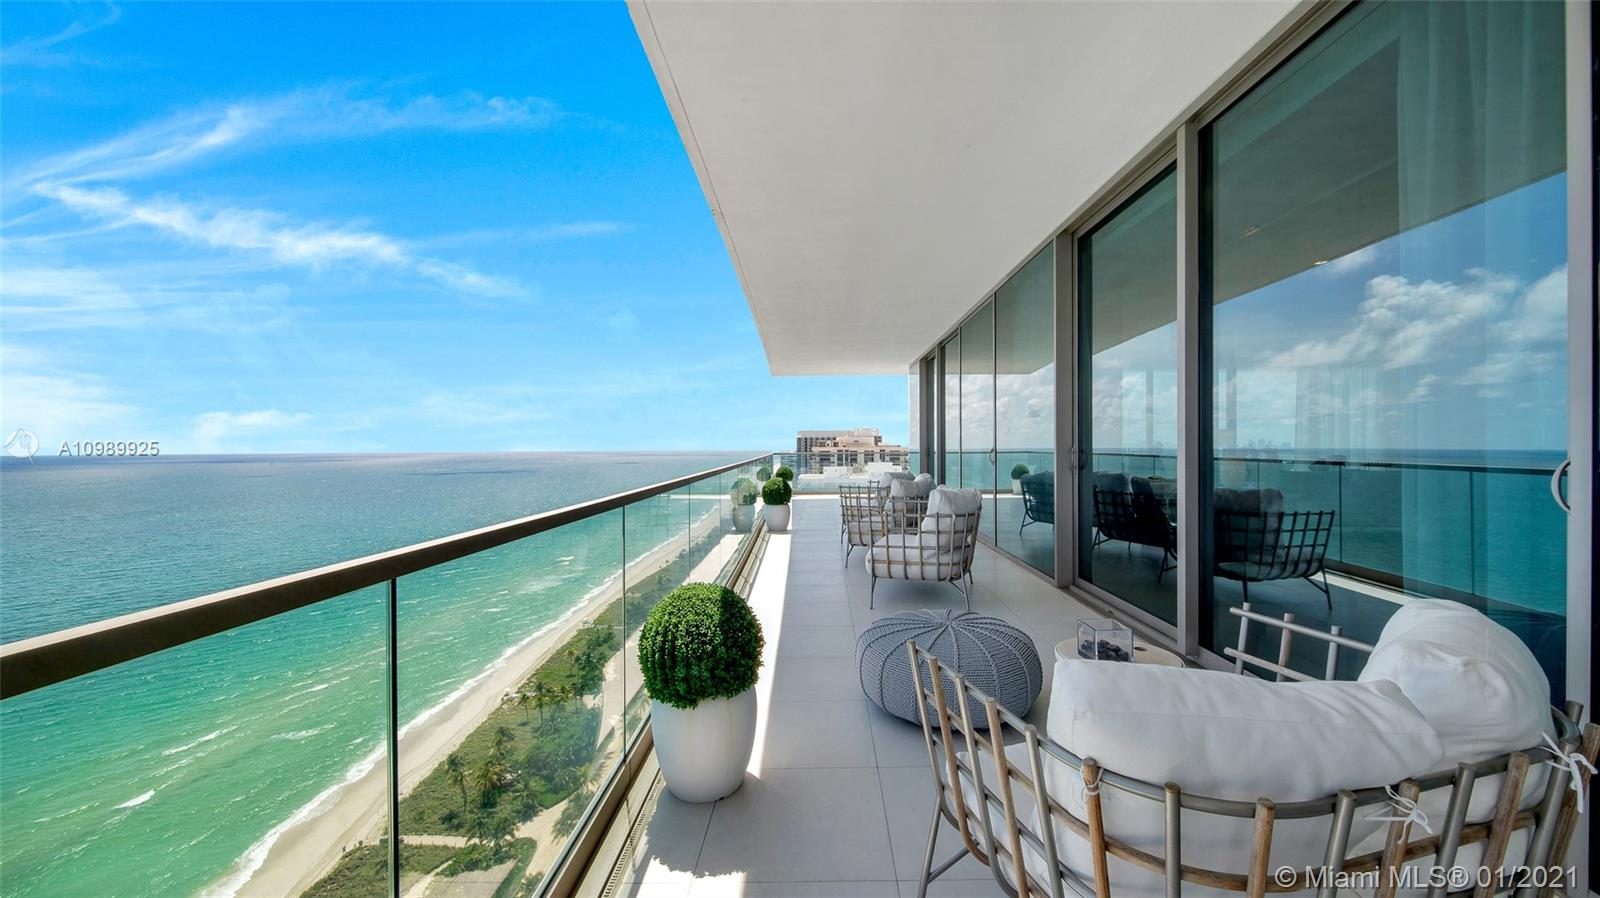 10201 Collins Ave, Unit #2601/02 Luxury Real Estate